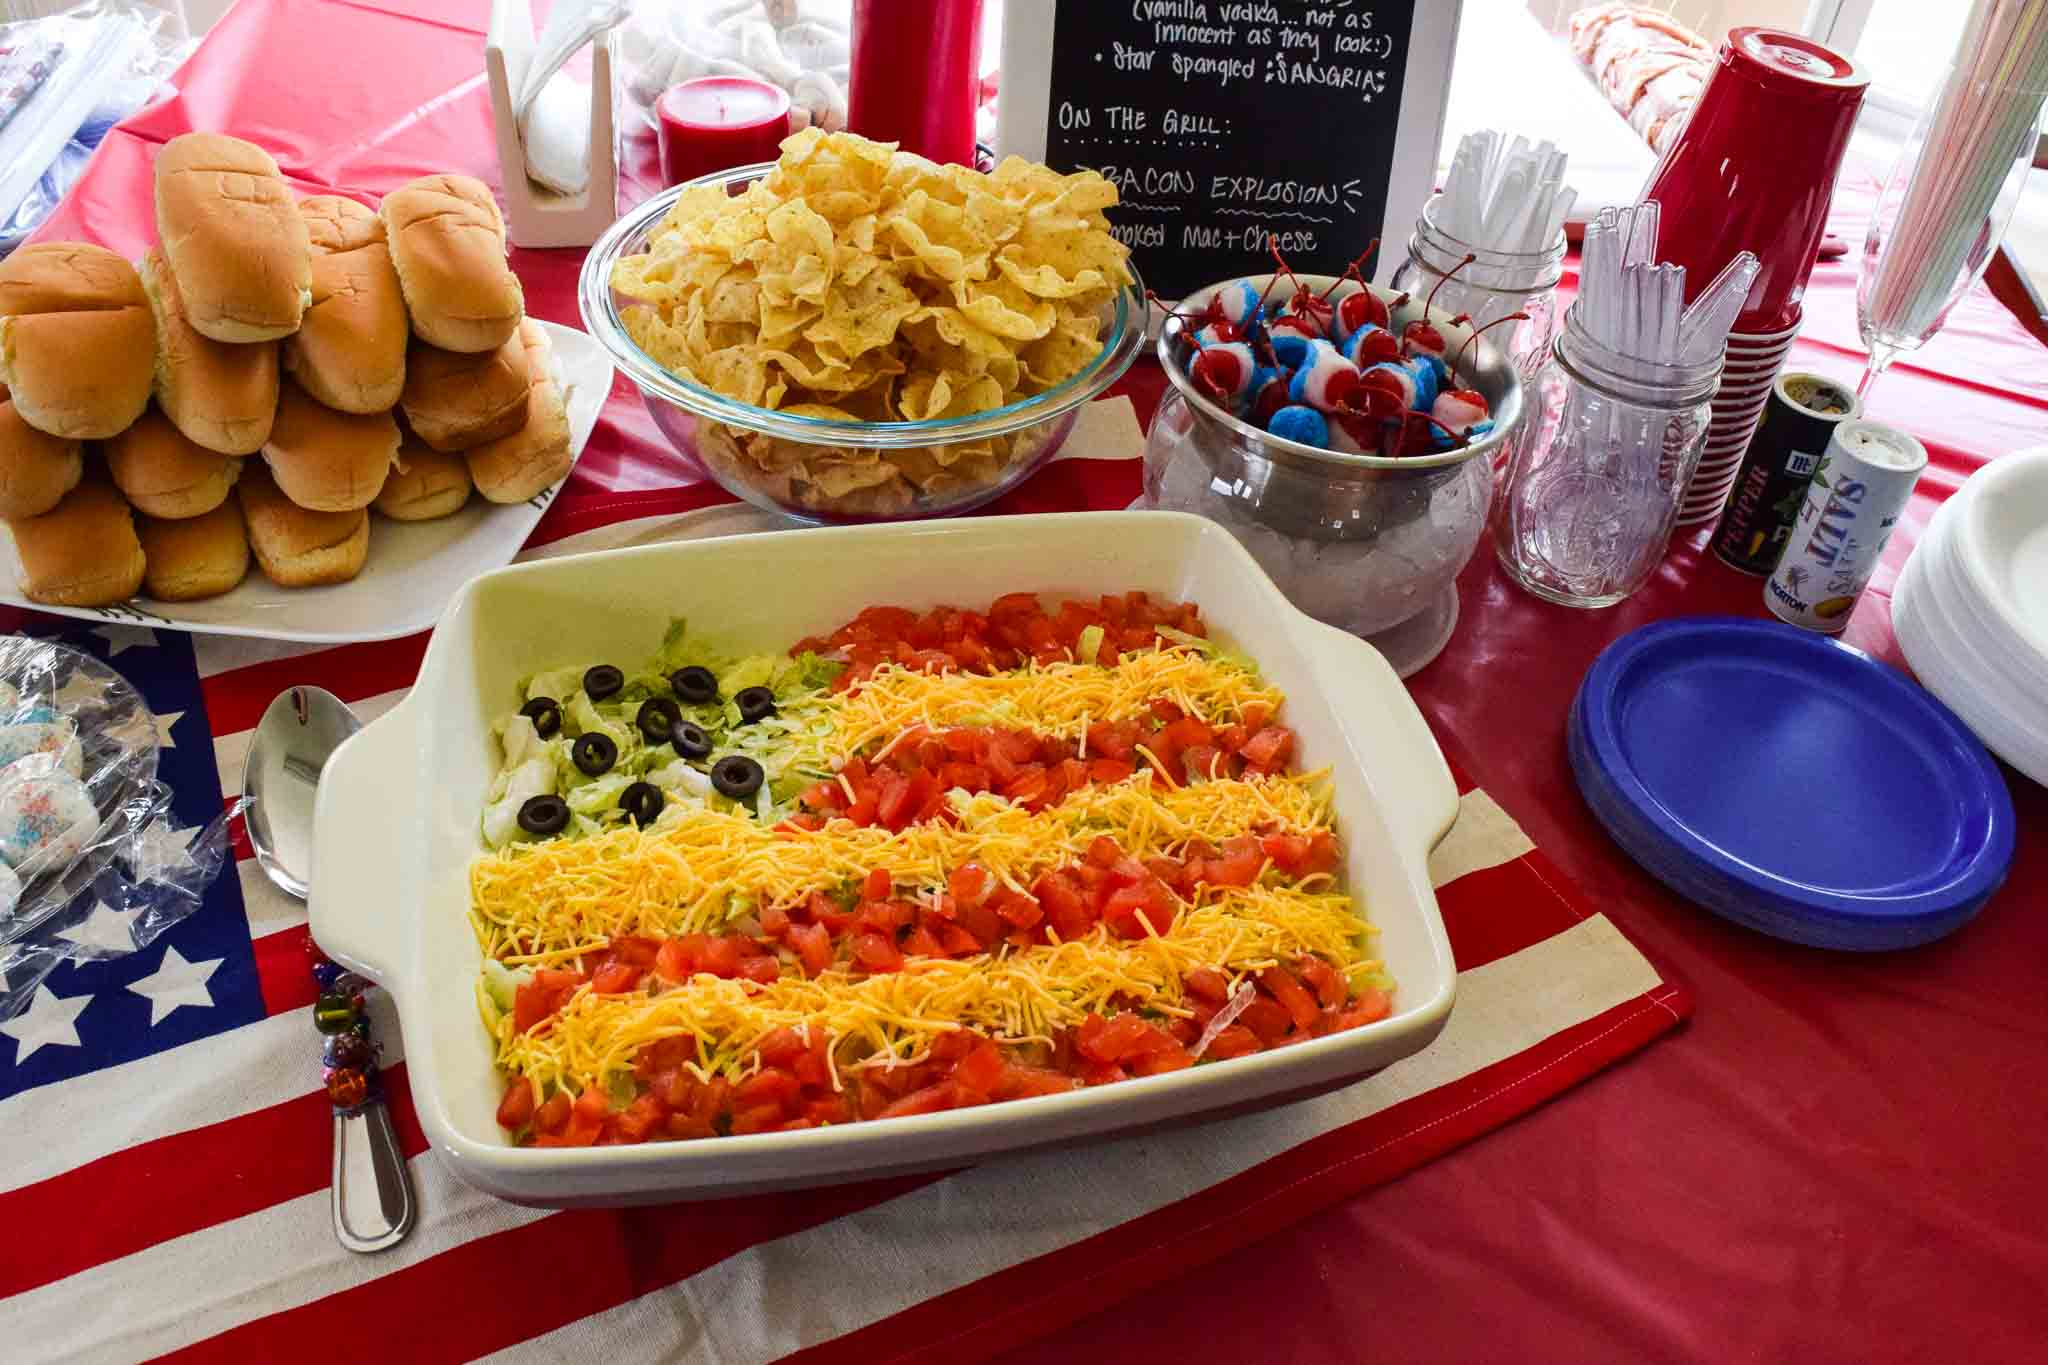 Memorial Day or July 4th party spread with flag dip hot dog buns red white and blue cherries